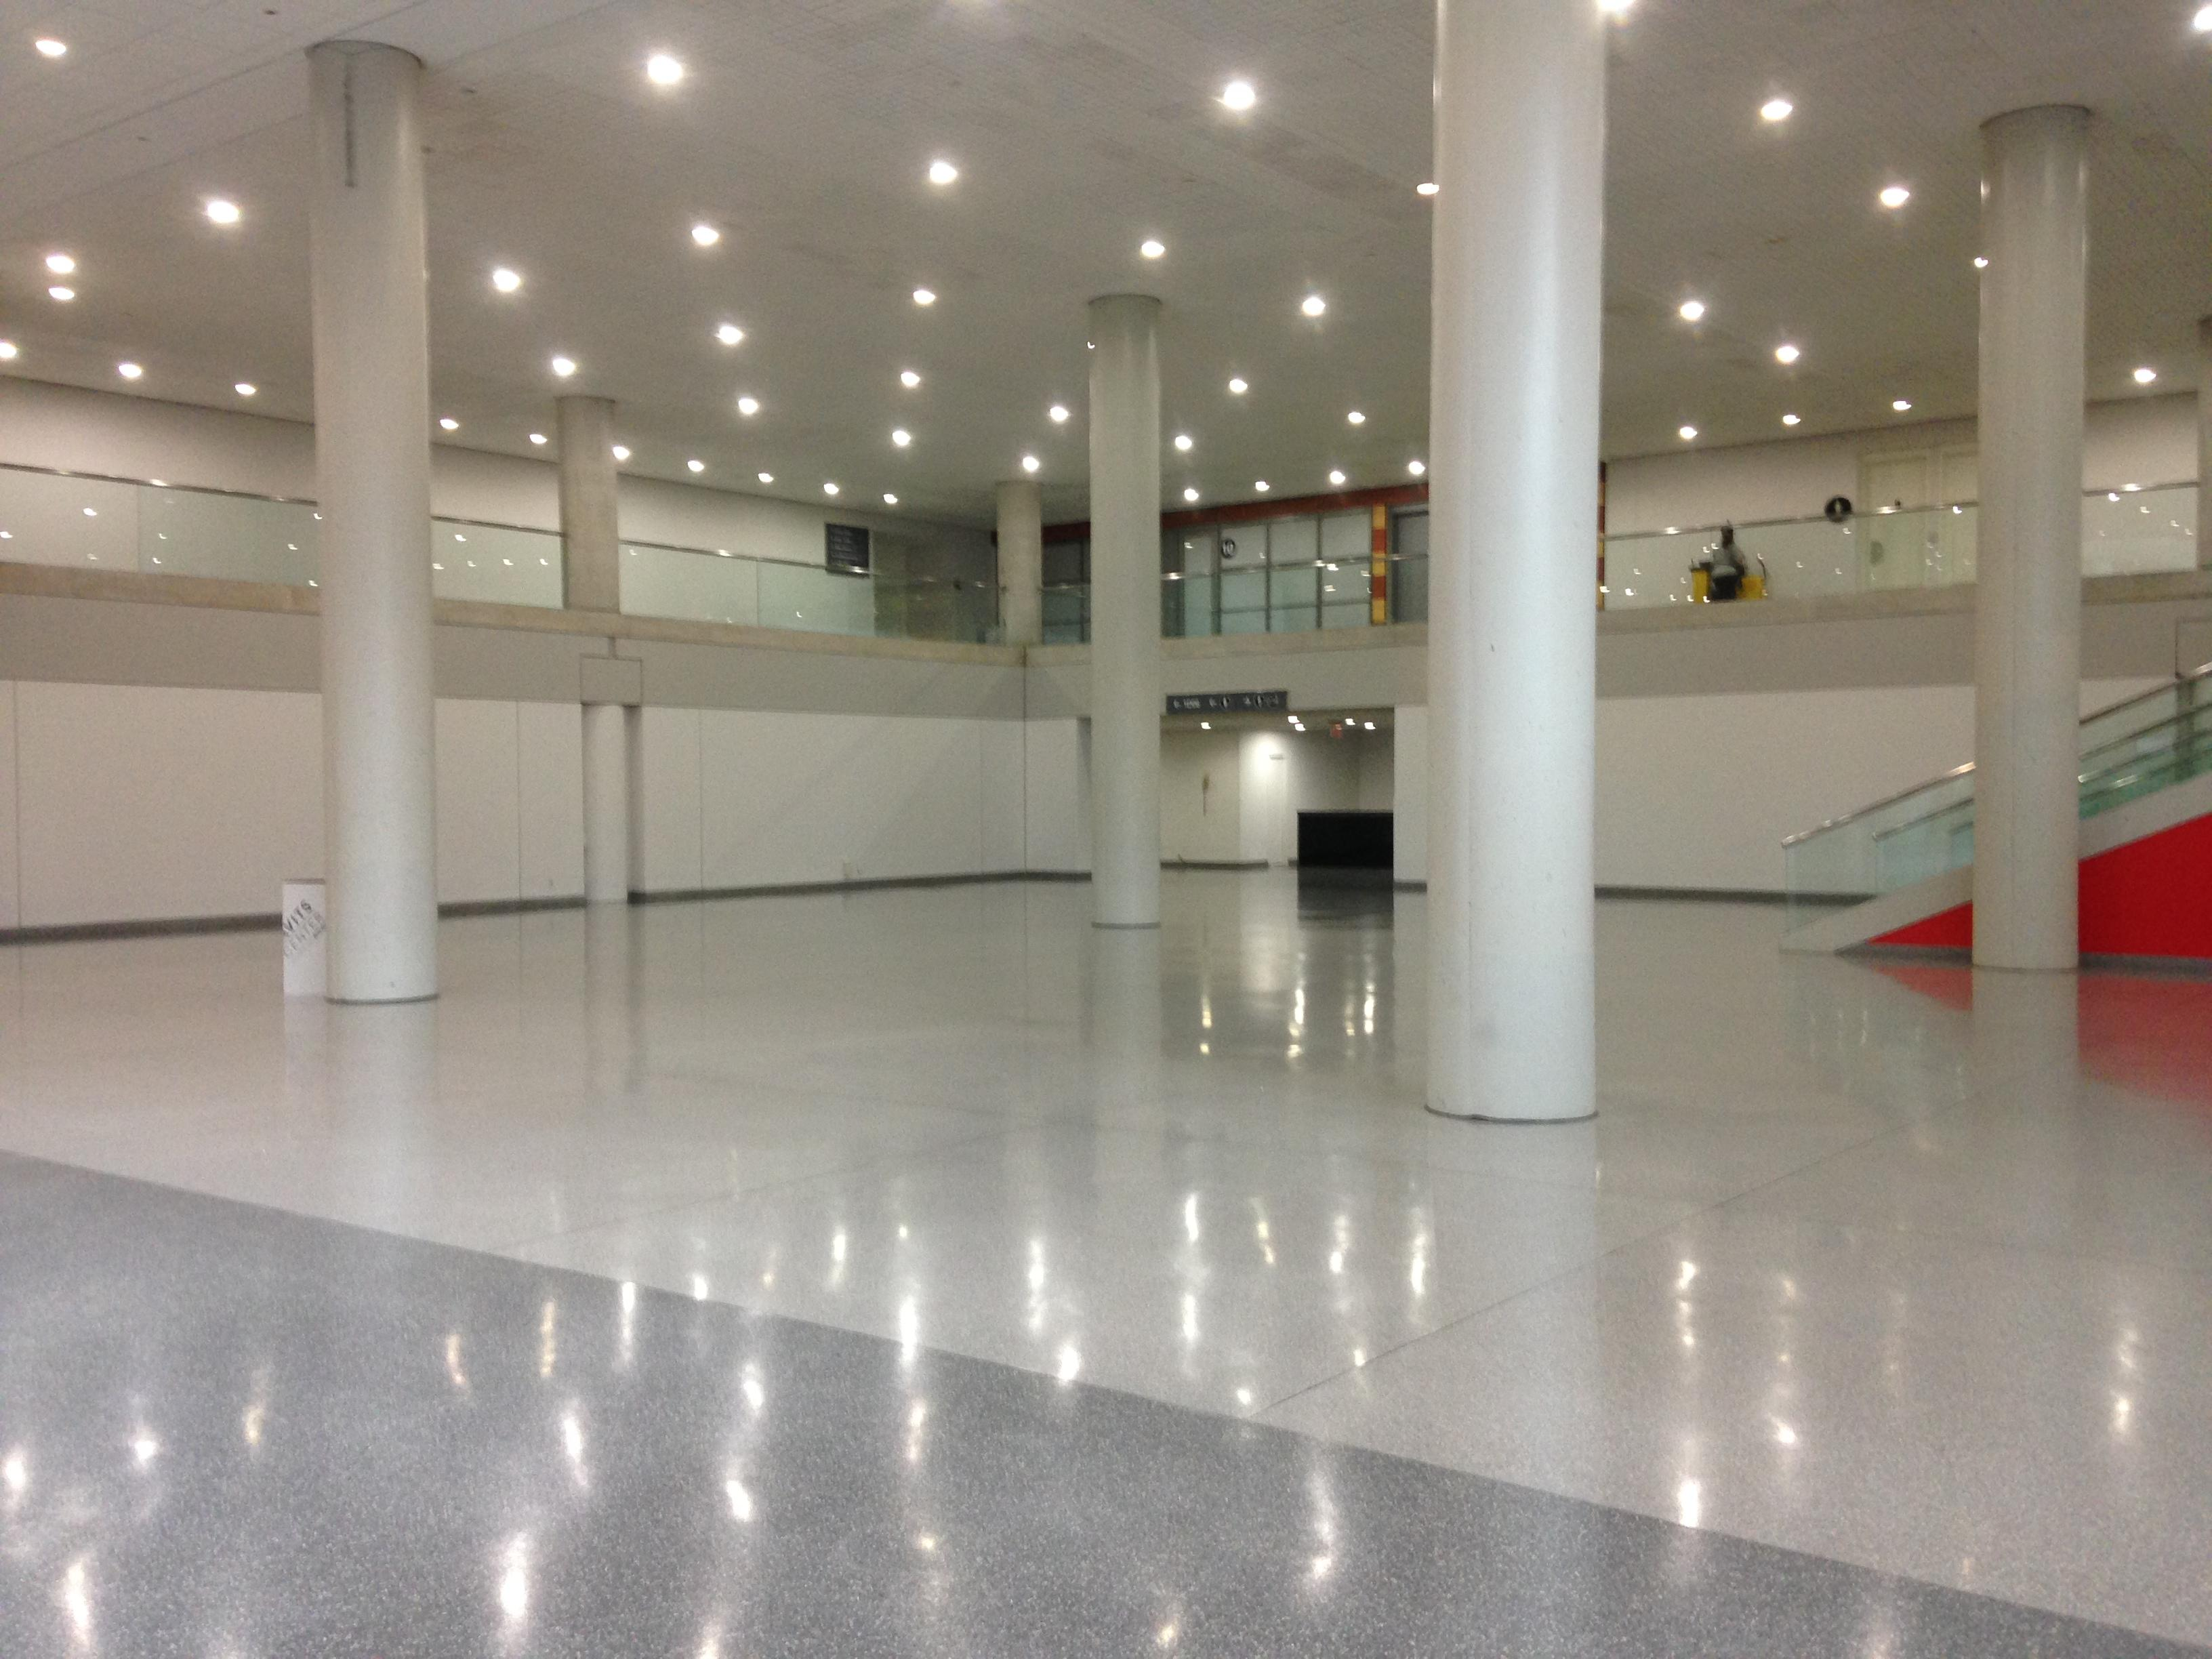 Photo of Jacob Javits Convention Center entrance to nursing room